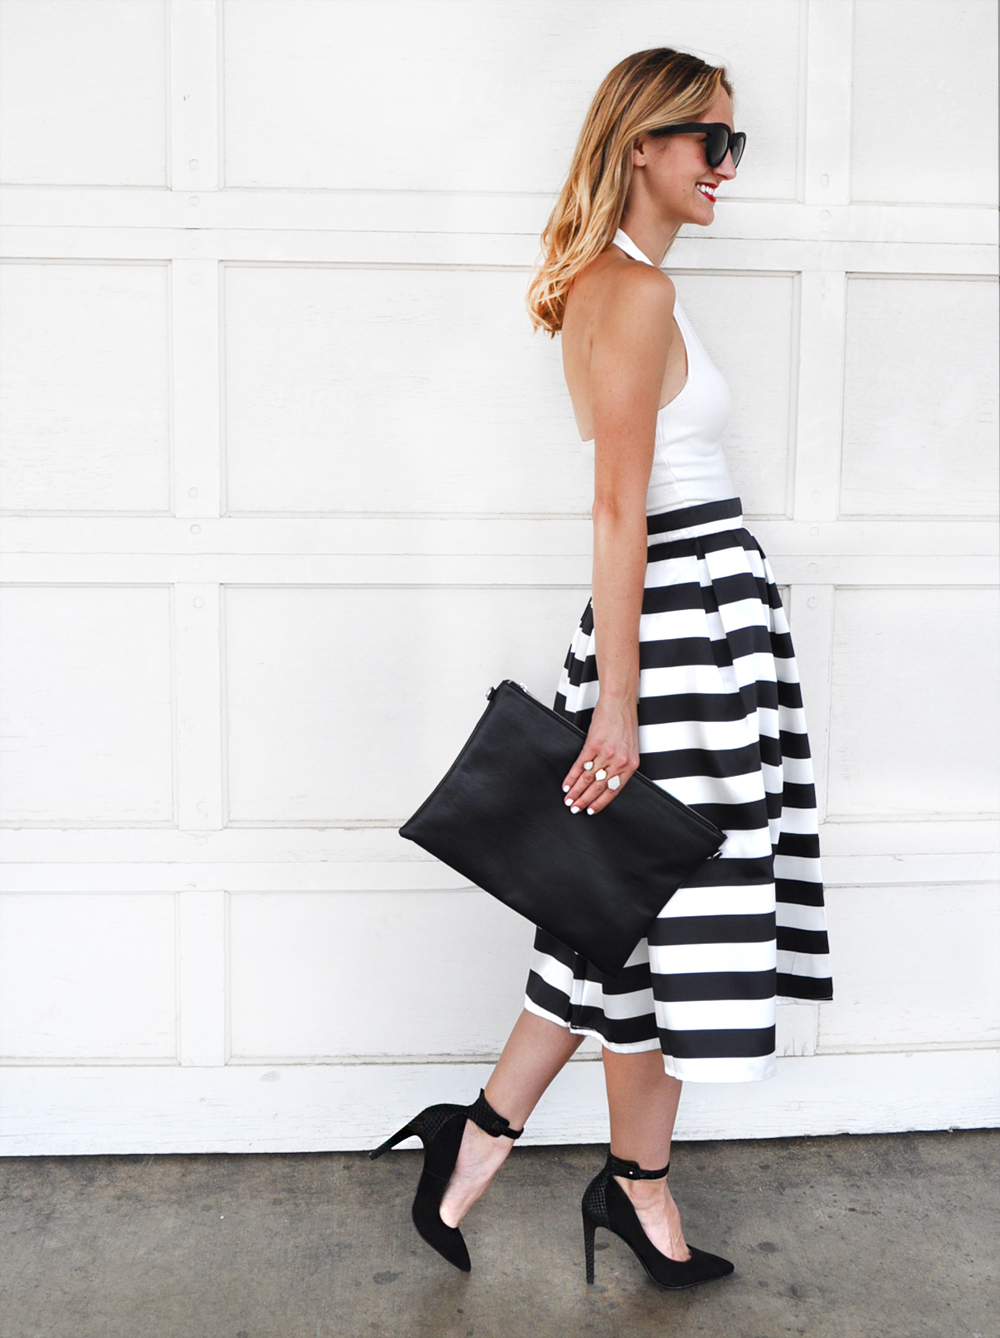 livvyland-blog-olivia-watson-austin-texas-fashion-blogger-chicwish-striped-tea-length-skirt-high-waist-black-white-topshop-white-halter-top-2